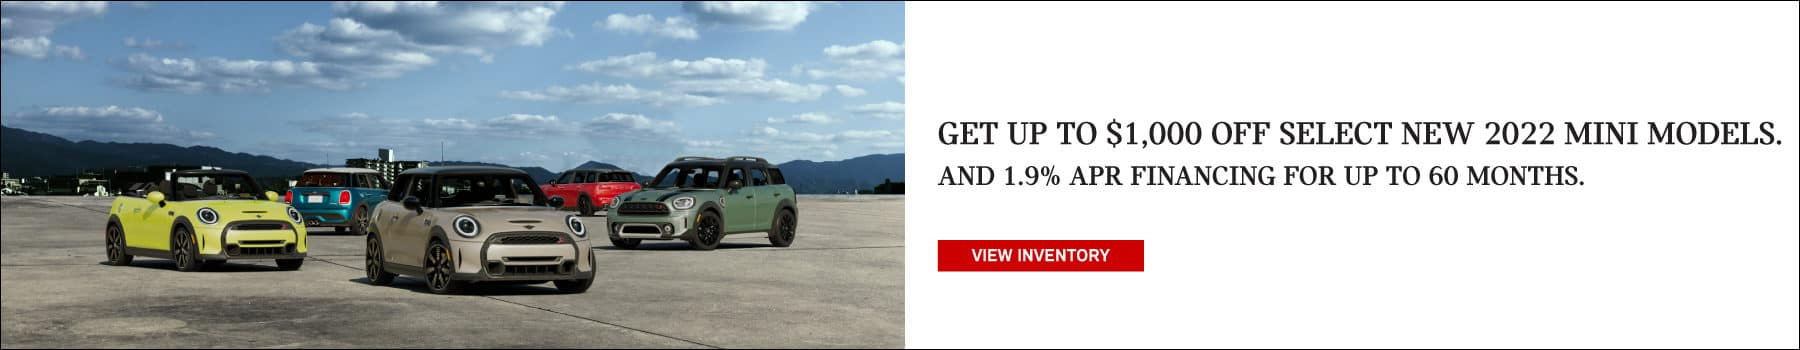 Get up to $1,000 off select new 2022 MINI models. And 1.9% APR financing for up to 60 months. Valid through 9/30/21. Click to view inventory. Image shows a family of 2022 MINI vehicles parked on concrete under a sky full of clouds.